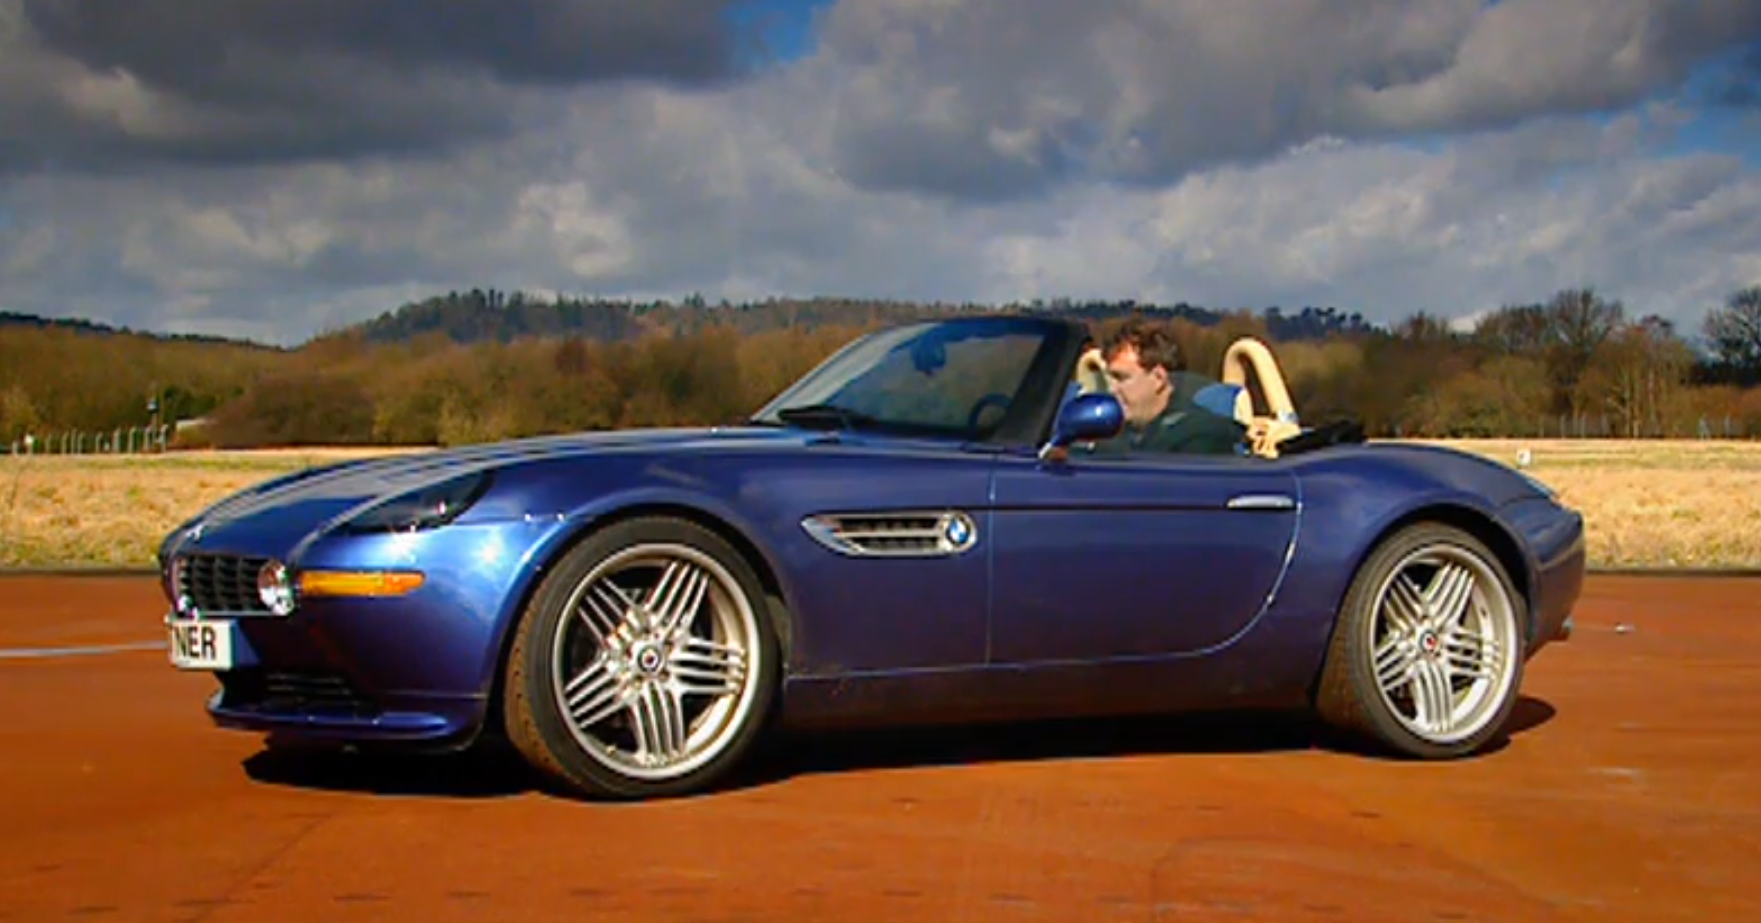 Black Stig Tests The Alpina Z8 Roadster On Top Gear Autoevolution